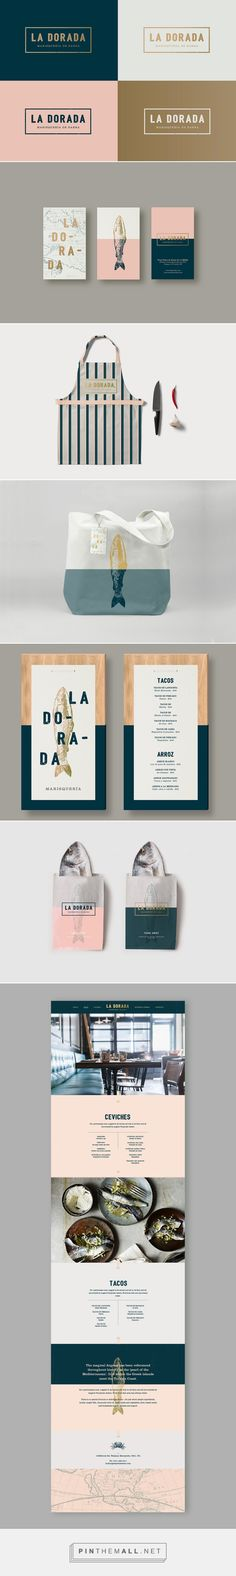 La Dorada packaging branding on Behance curated by Packaging Diva PD. Who's up for fish for lunch : ) PD